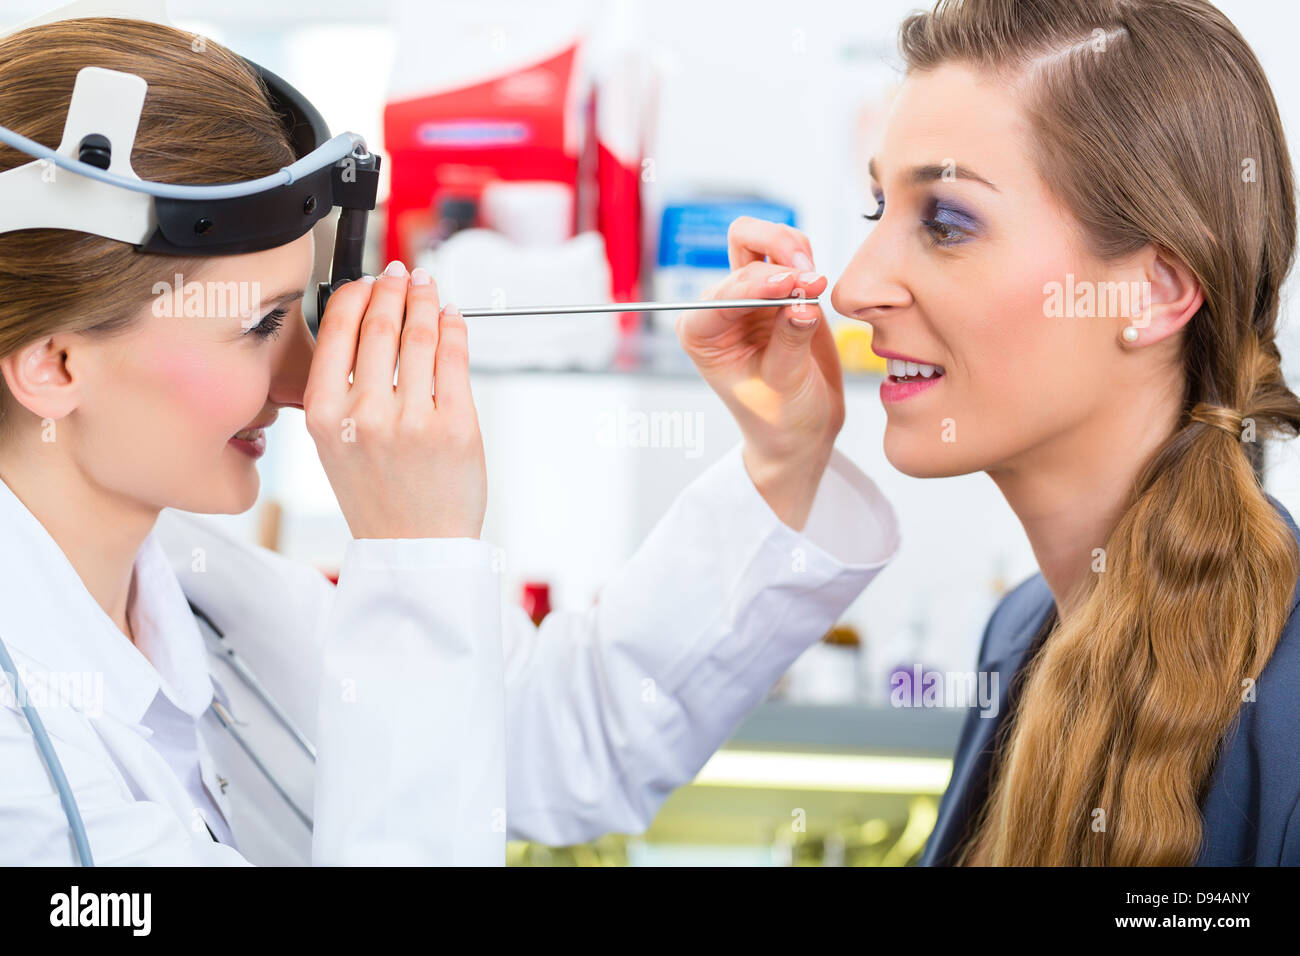 Doctor Young Female Consultant Or Ent Specialist With A Patient Stock Photo Alamy